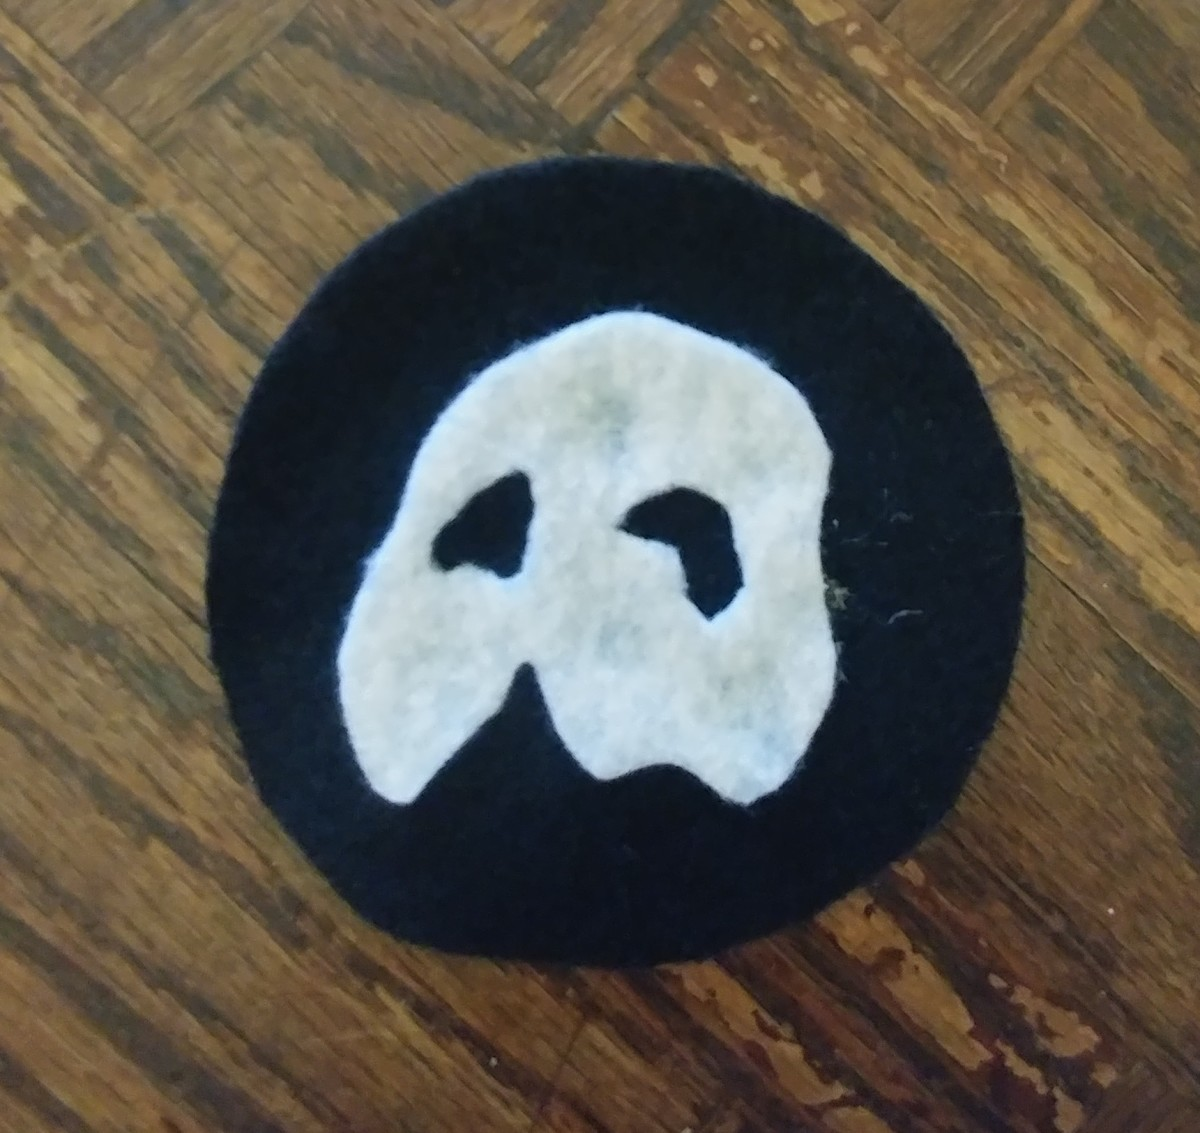 Hot glue the mask on the black circle.